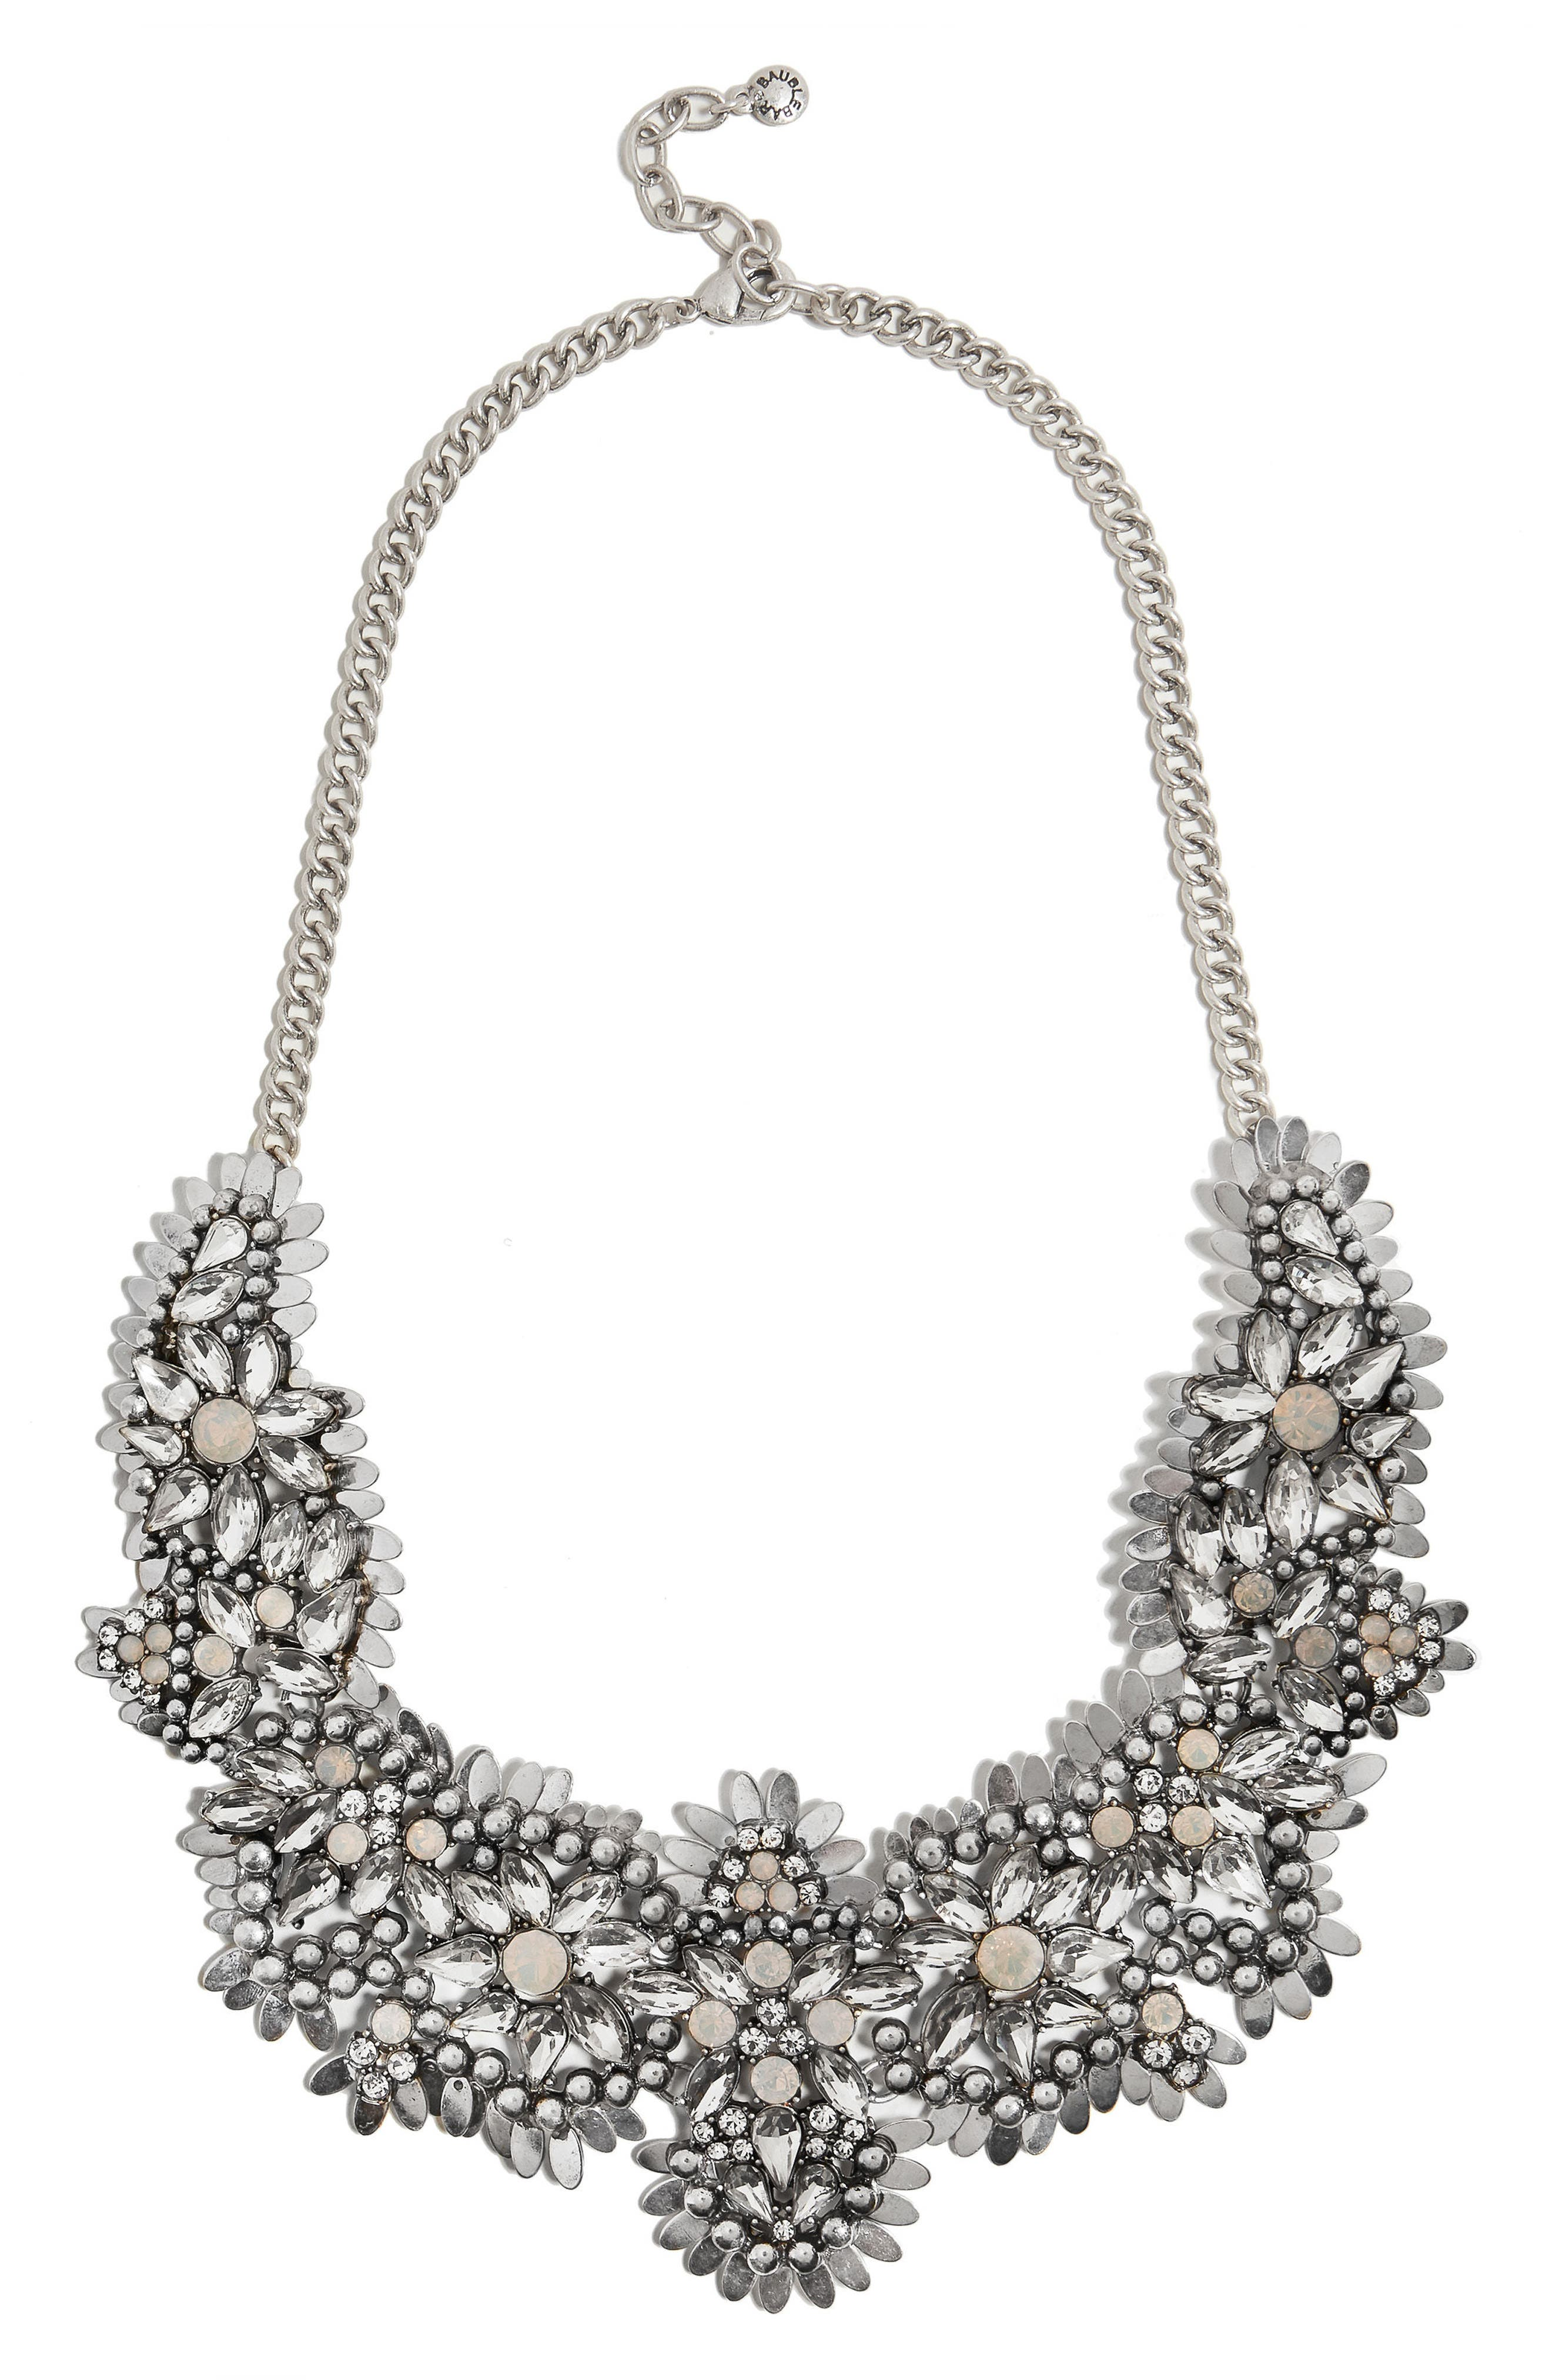 Main Image - BaubleBar Ice Queen Crystal Statement Necklace